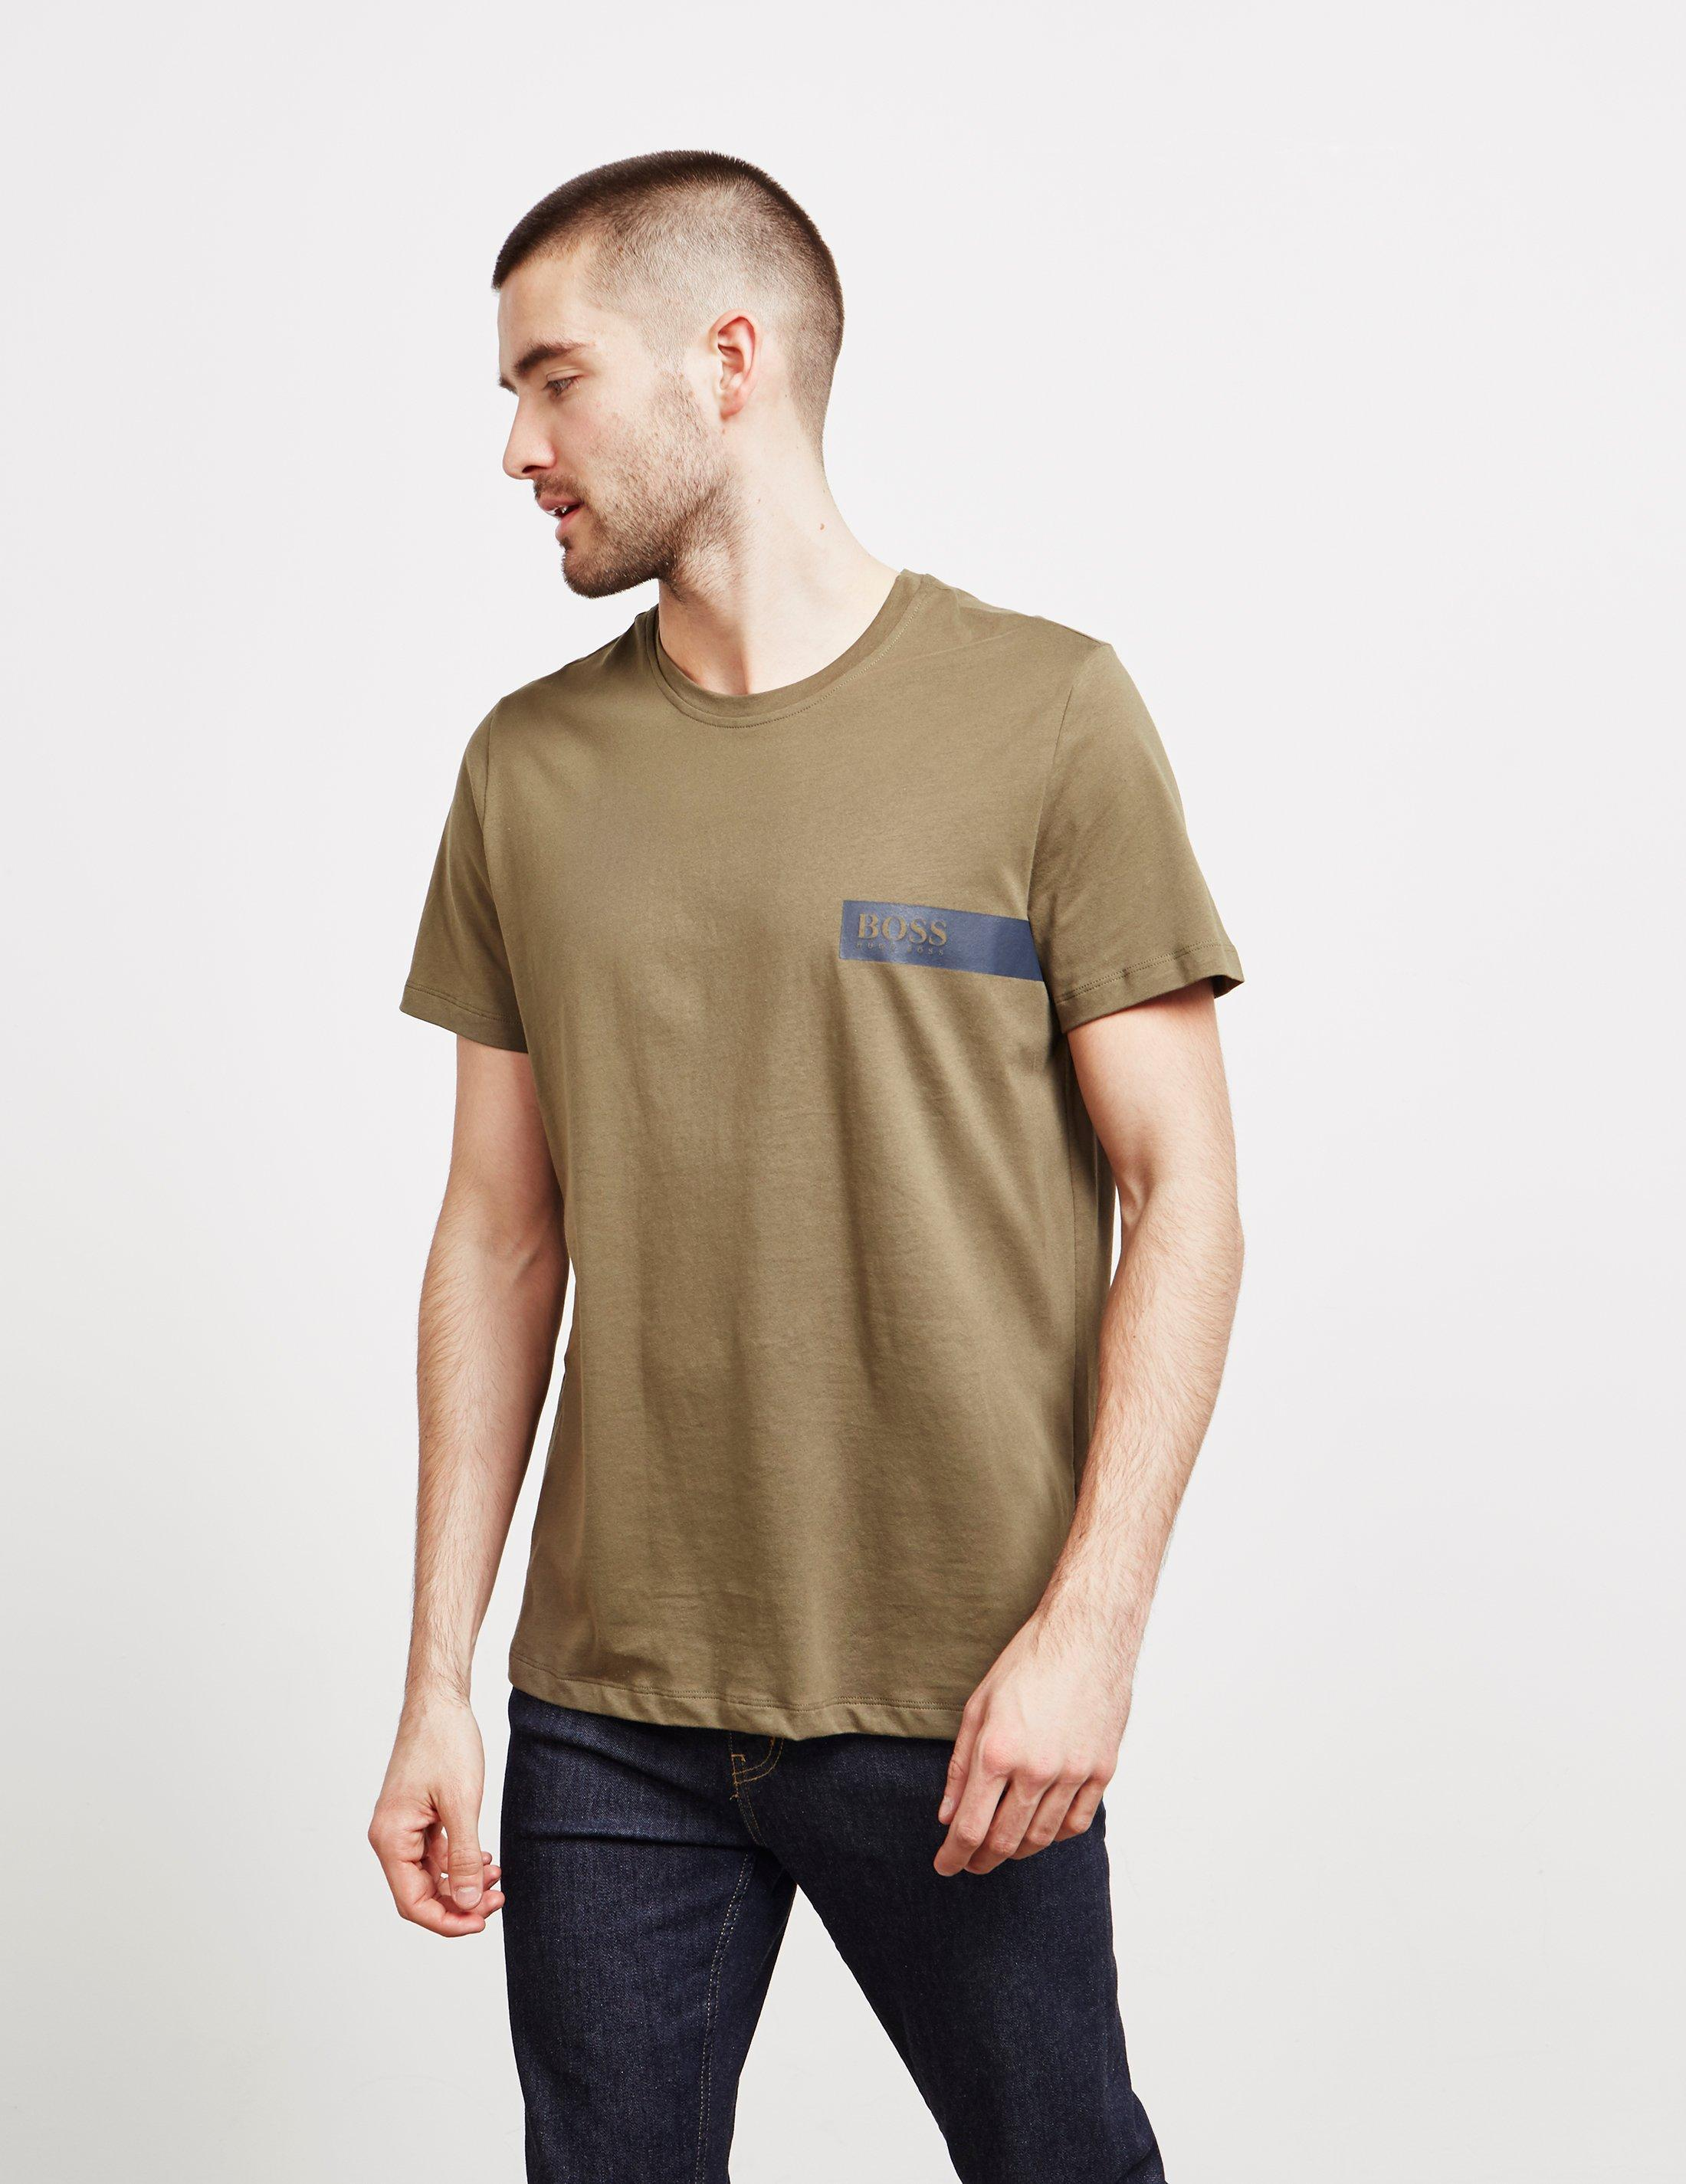 7a05c9bd BOSS - Chest Block Short Sleeve T-shirt Green for Men - Lyst. View  fullscreen